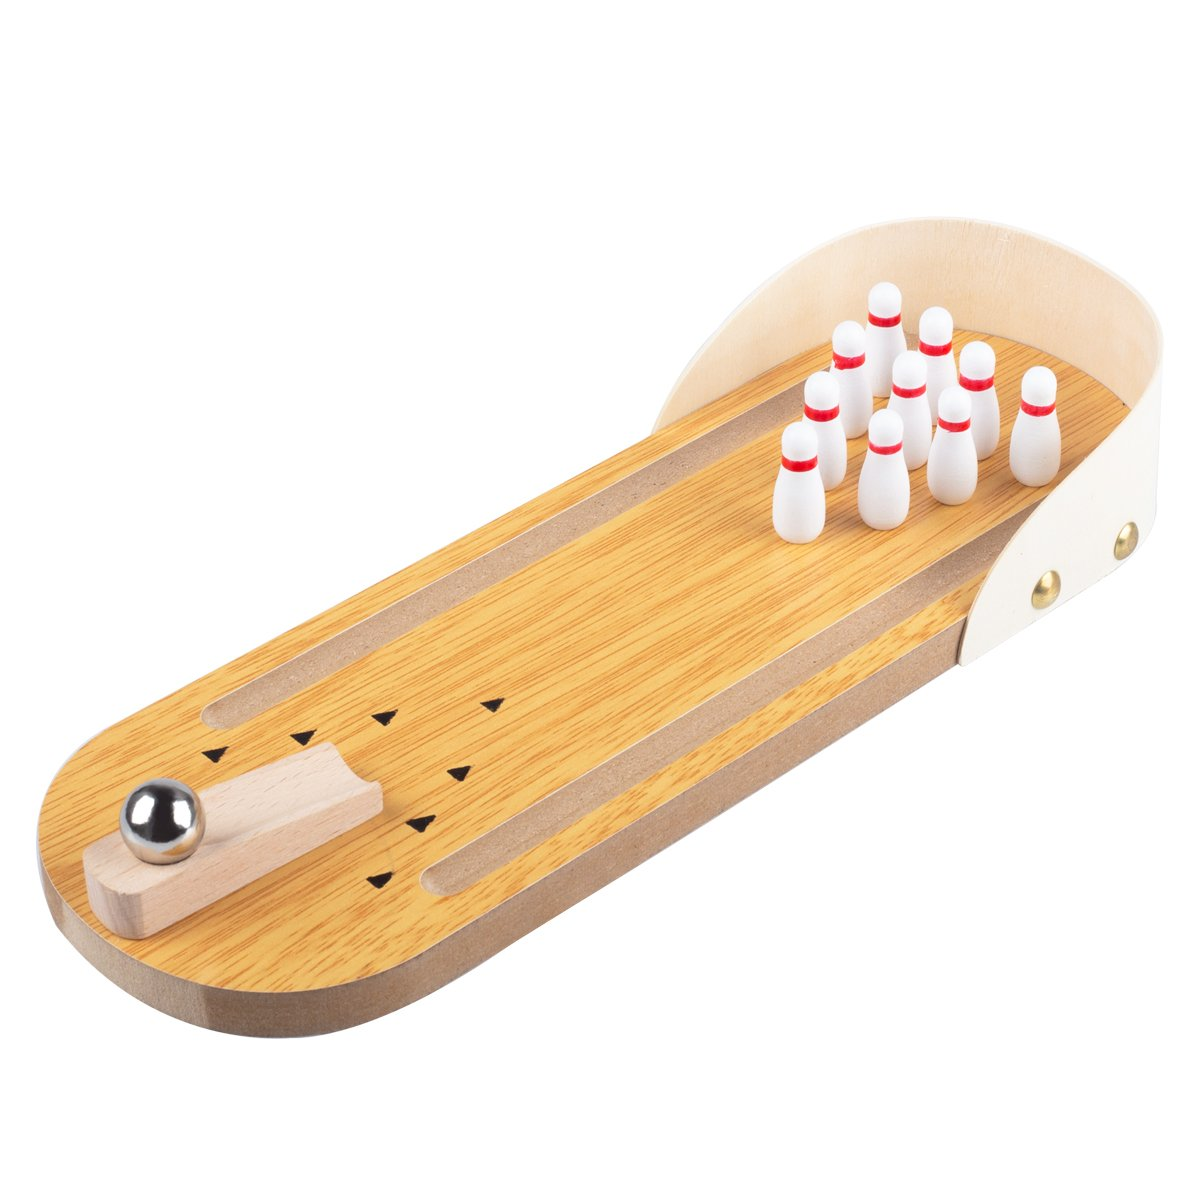 Mini Bowling Game Set, Agomo Mini Wooden Desktop Bowling Game for Kids and Adults, Easy to Assemble and Play, for Gift